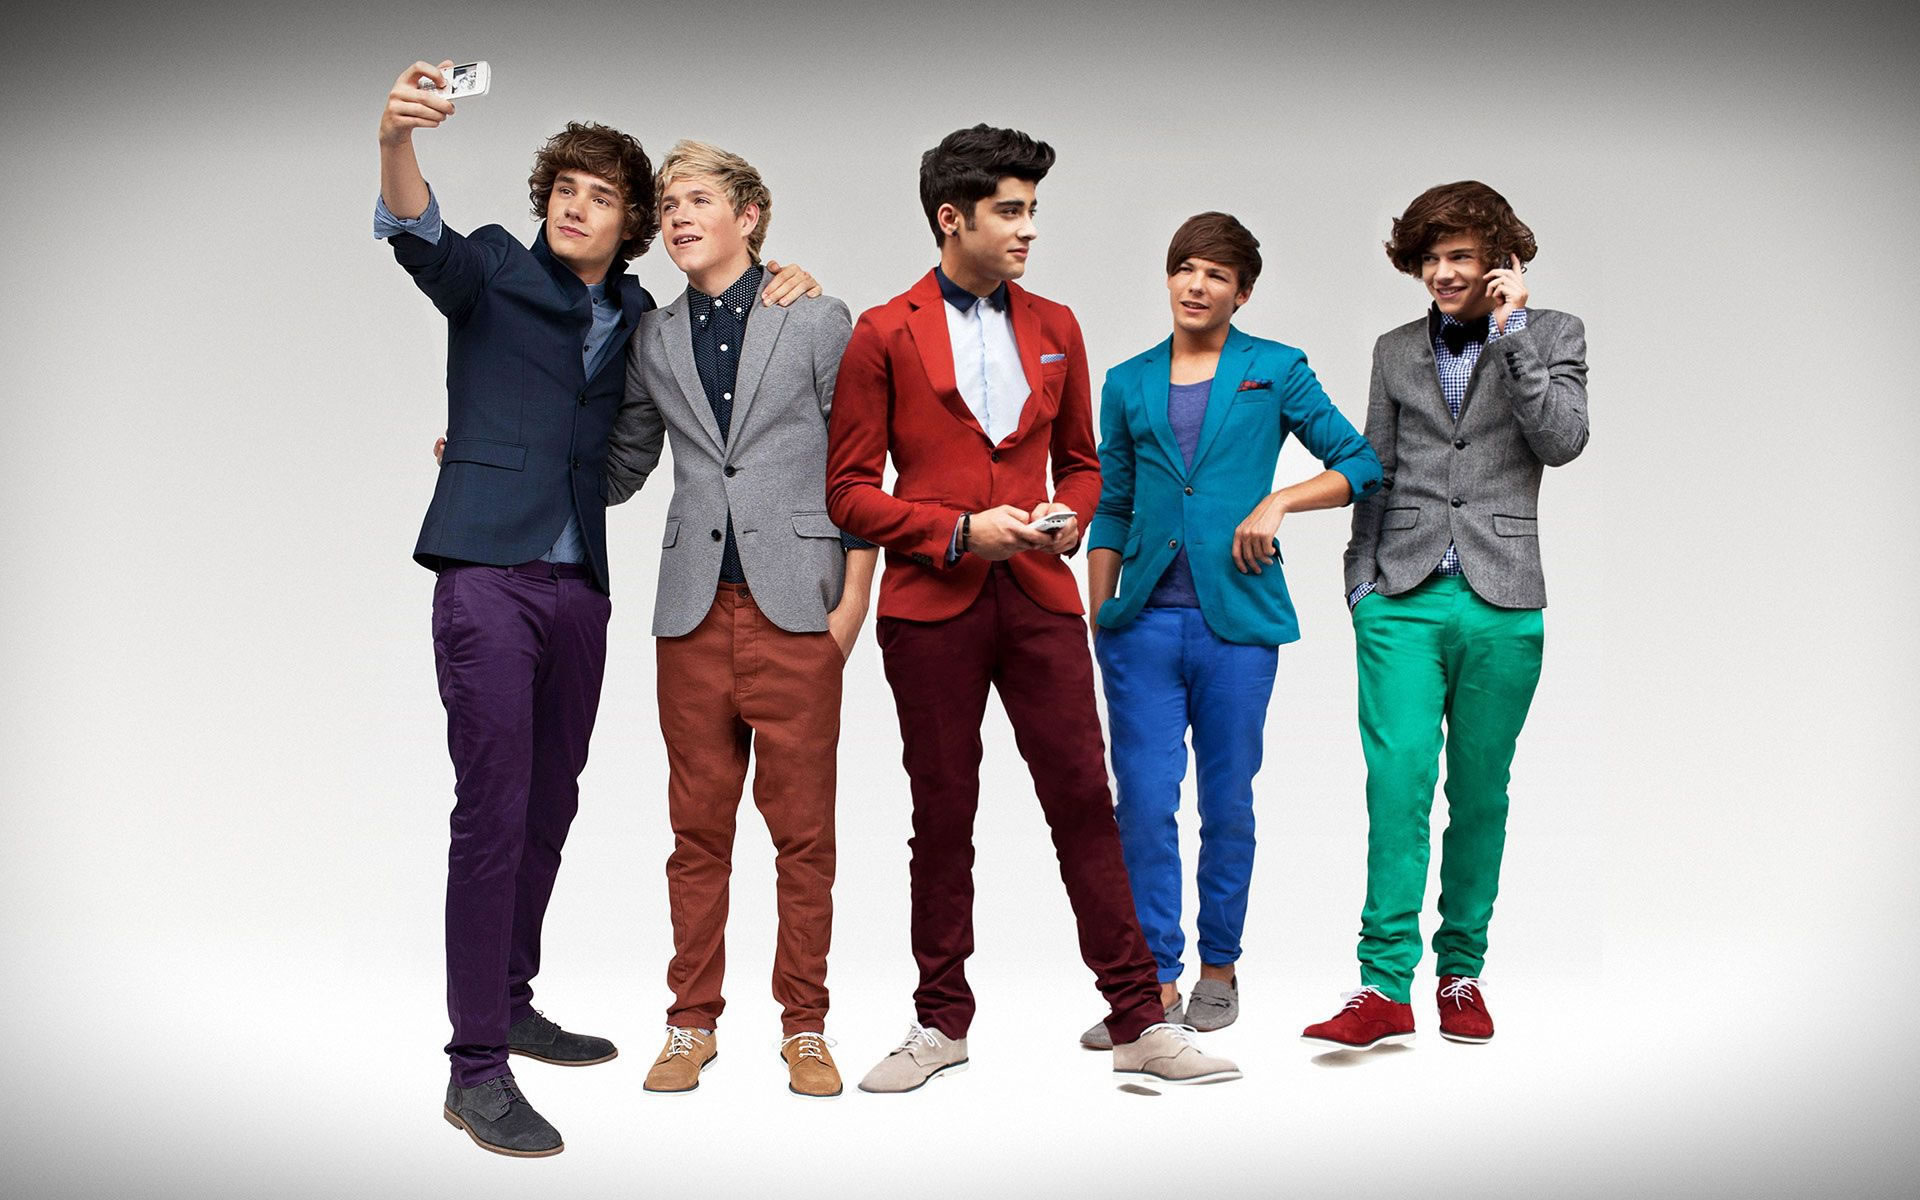 Free Stock Photos One Direction Wallpapers Hd